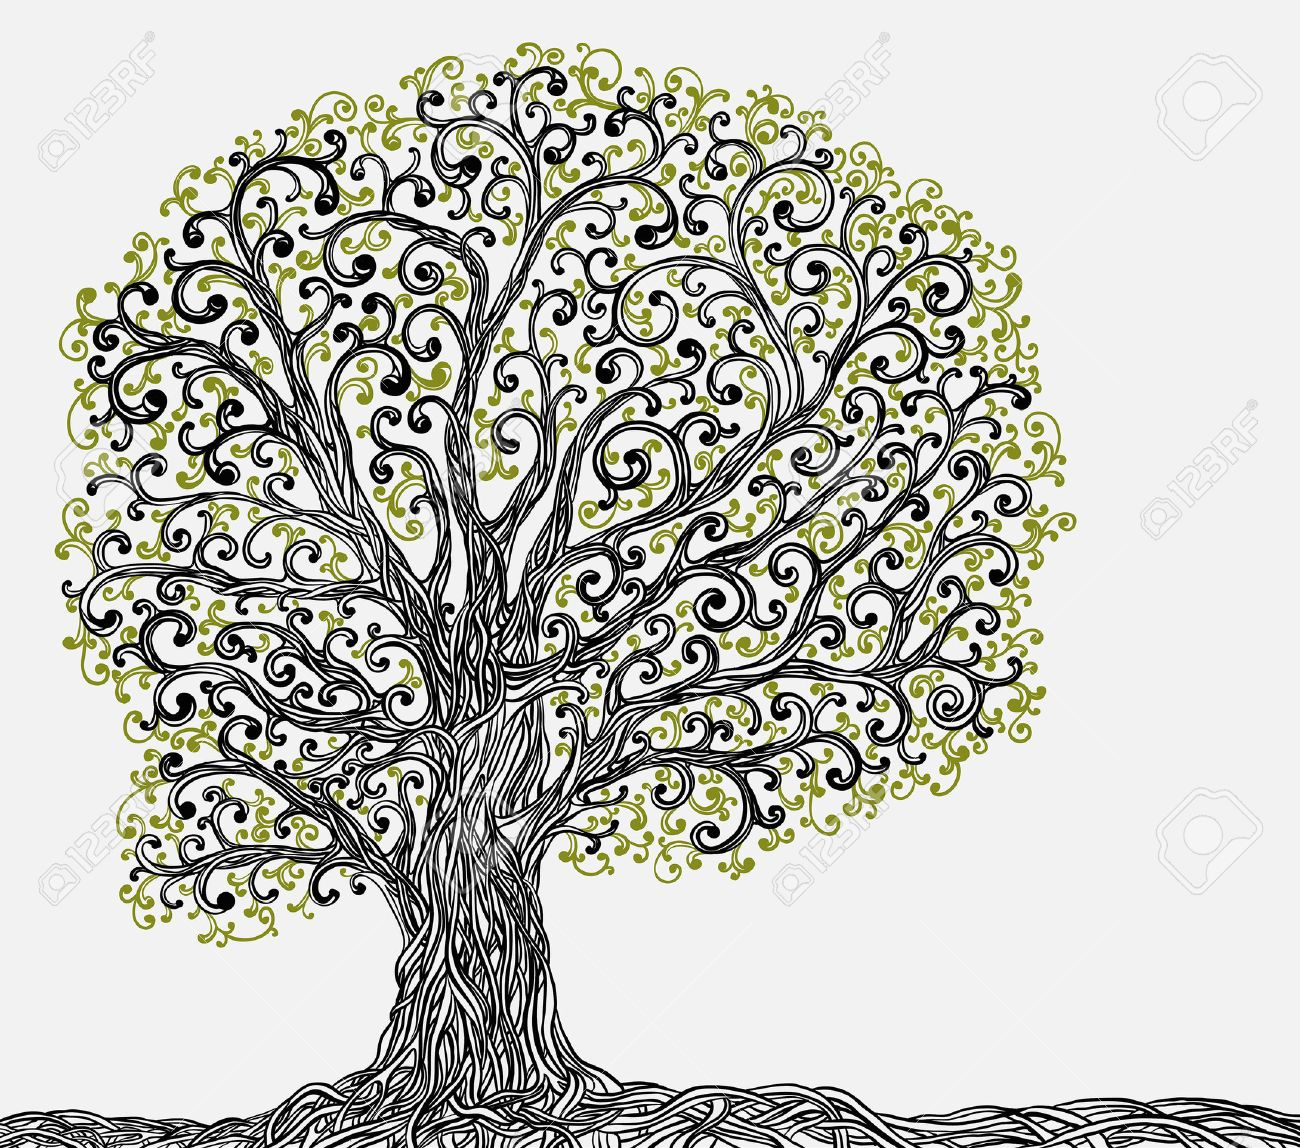 1300x1148 Spring Graphic Tree With Twisted Roots Royalty Free Cliparts